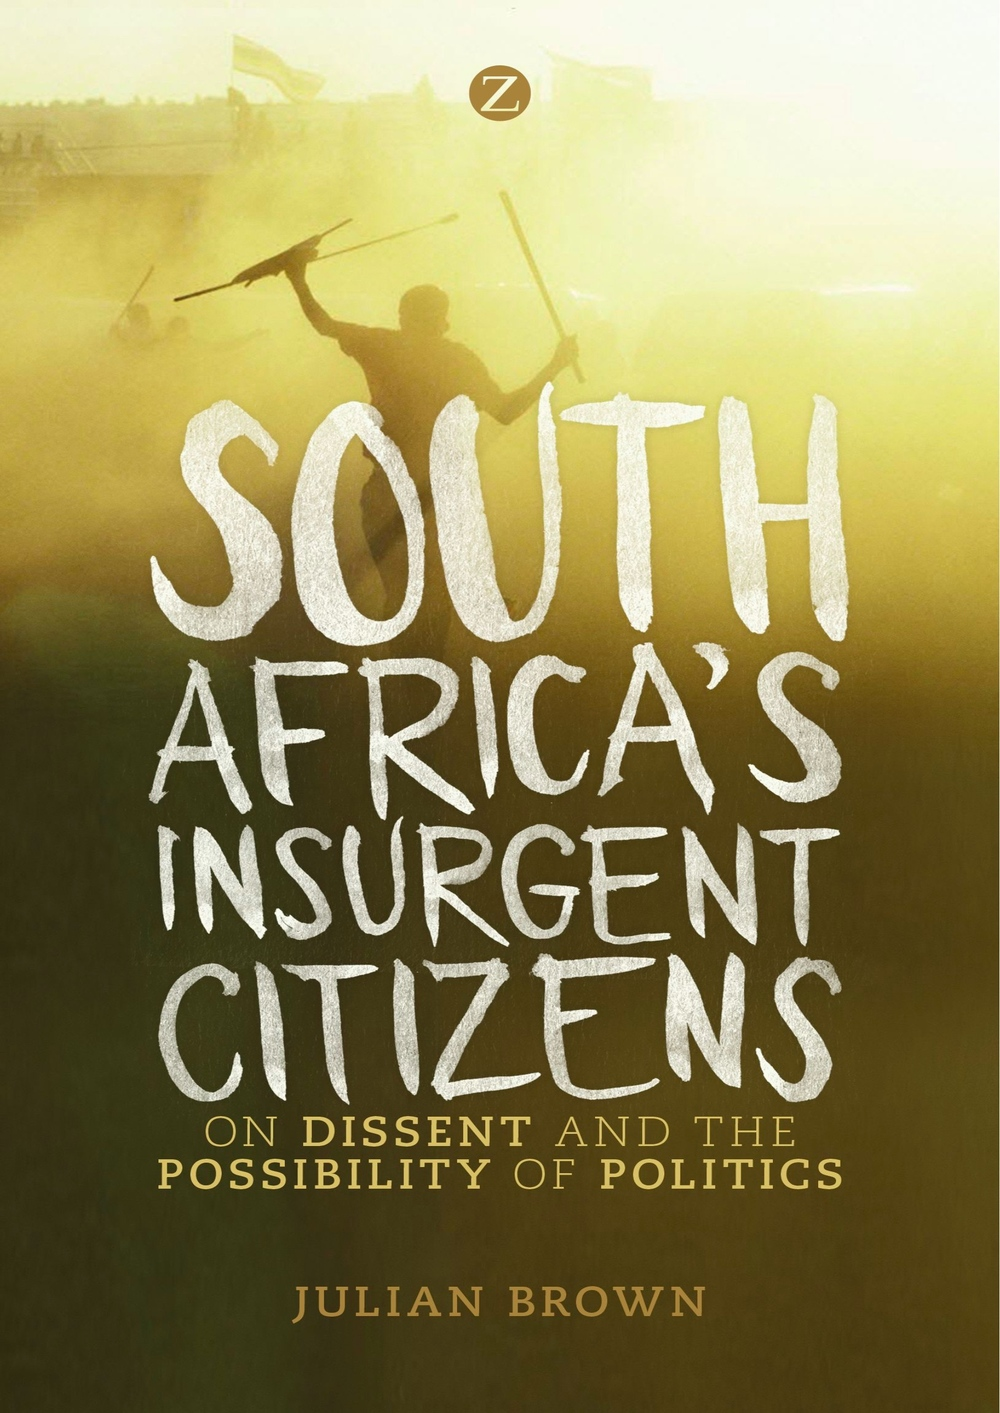 S Africa's Insurgent citizens cover.jpg